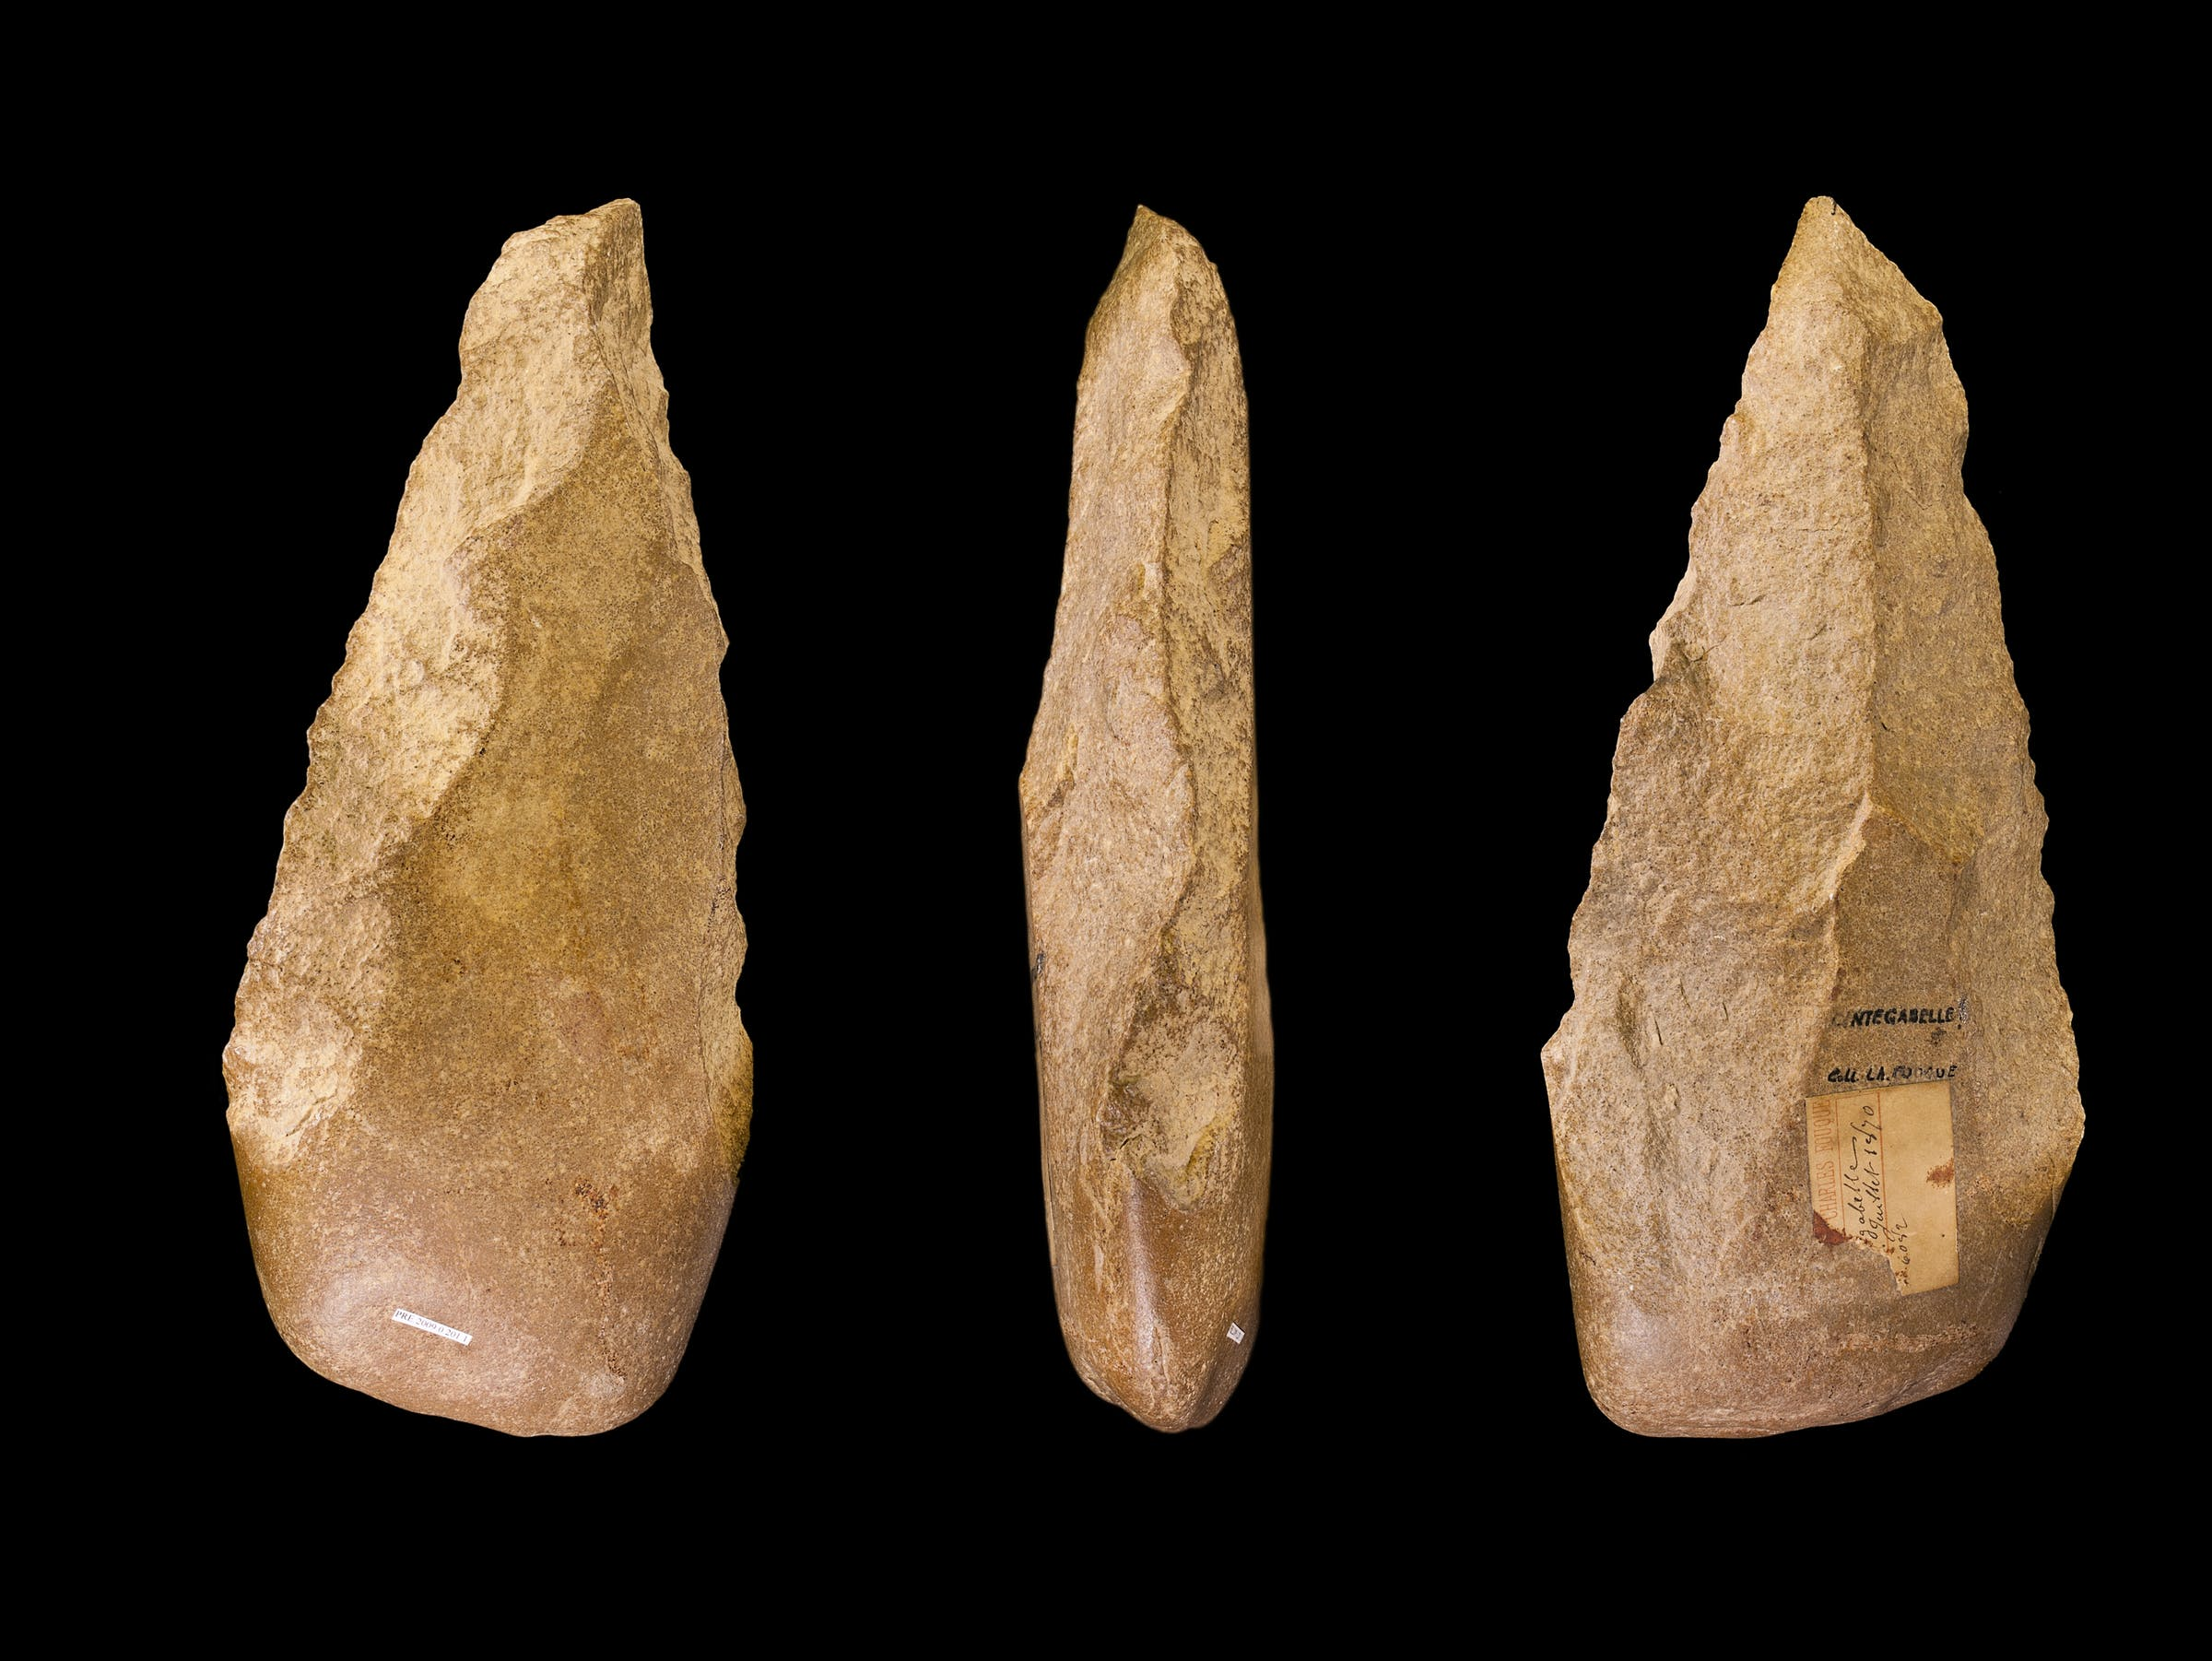 Earty Stone Age tools